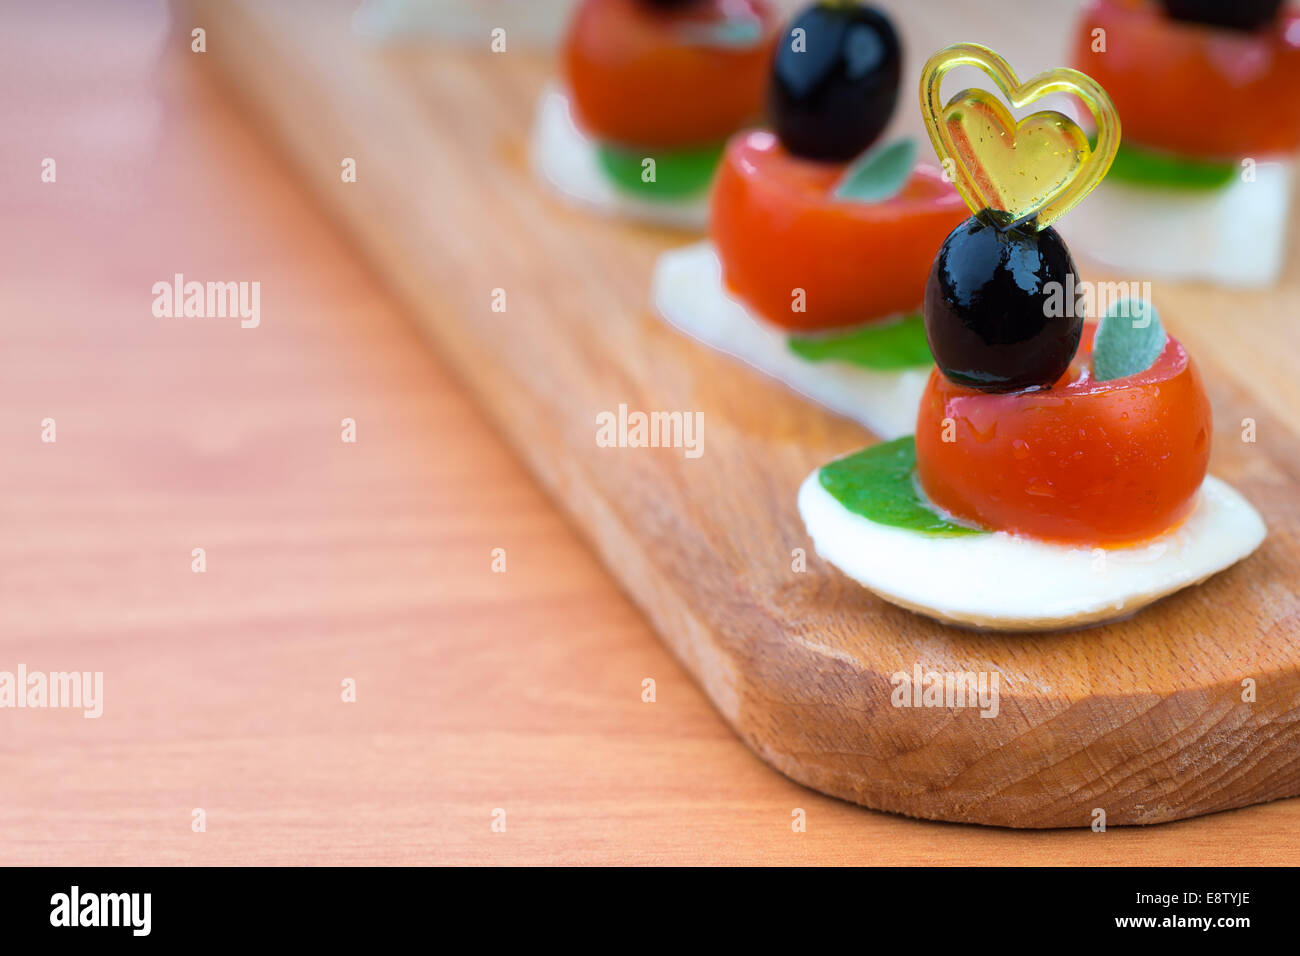 Simple snack canape with tomato, mozzarella and basil close-up on wooden background - Stock Image